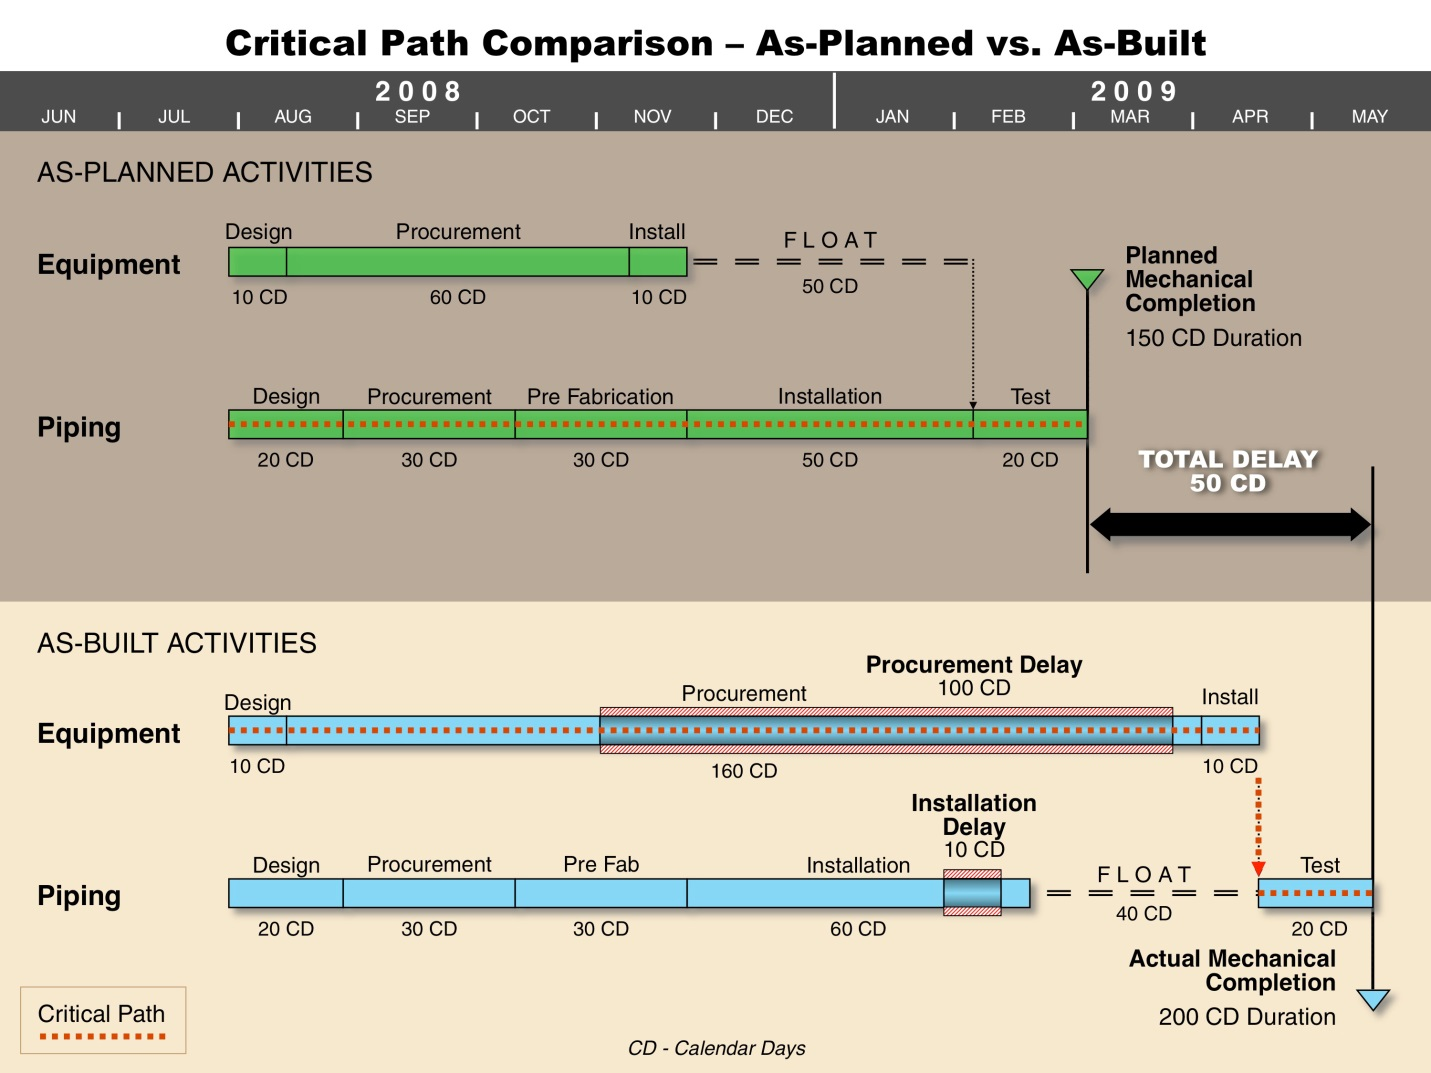 An analysis that only focuses on critical path work at the beginning of the window risks ignoring the real delay to Mechanical Completion, and ultimately to Project Completion.